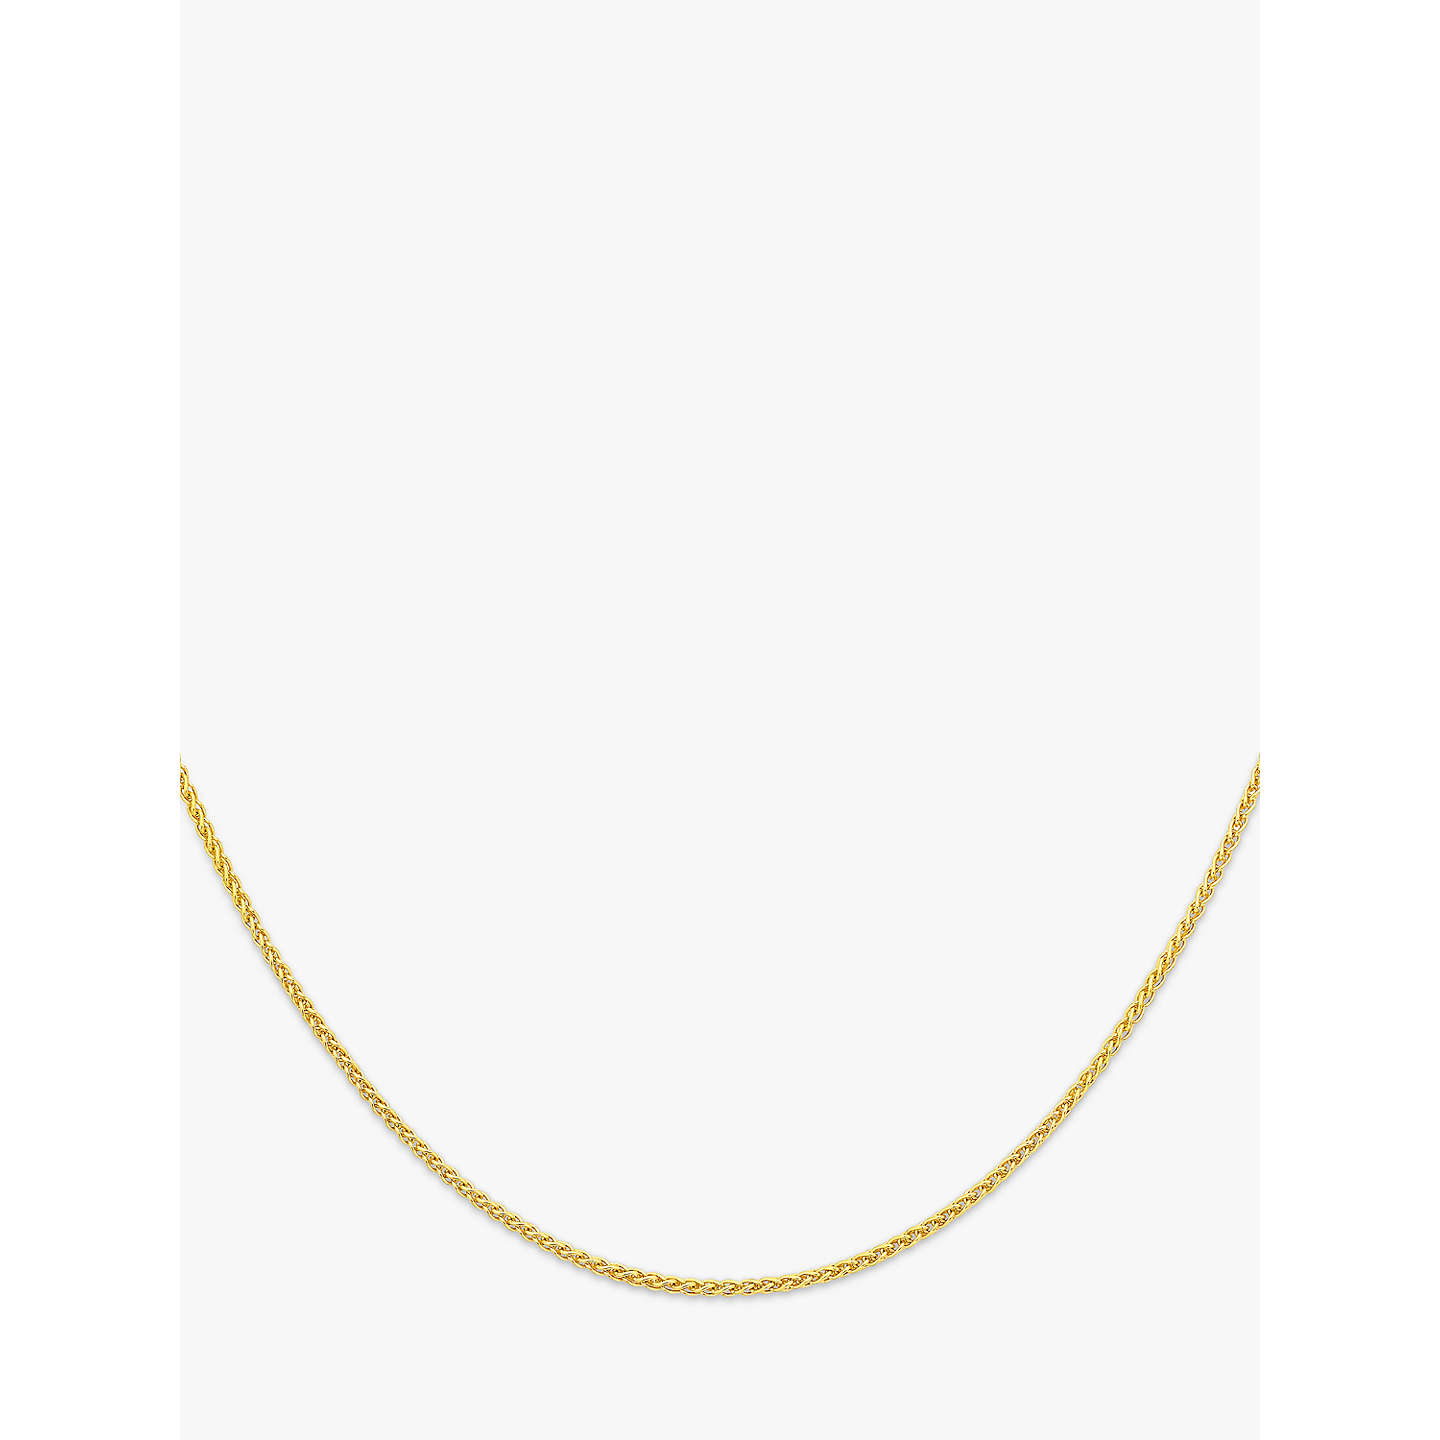 diamonds jewellery chain gold new white chains quot miltons spiga image